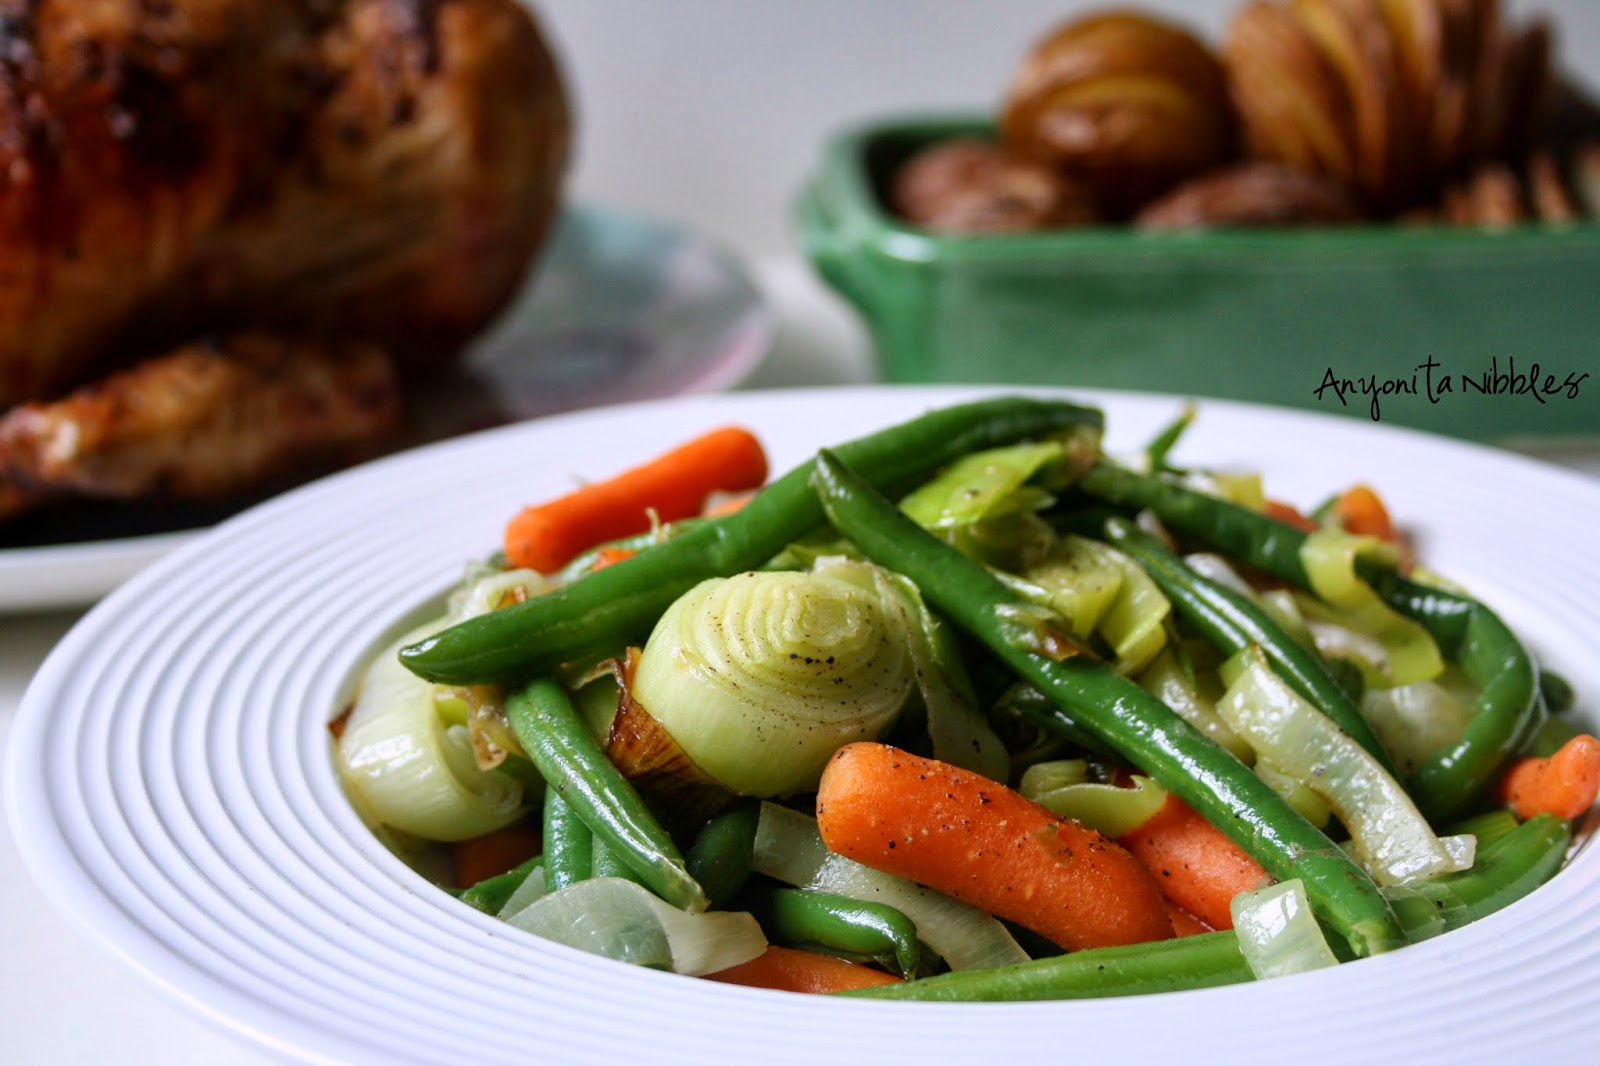 Sauteed spring vegetables side dish for Mother's Day | Anyonita Nibbles